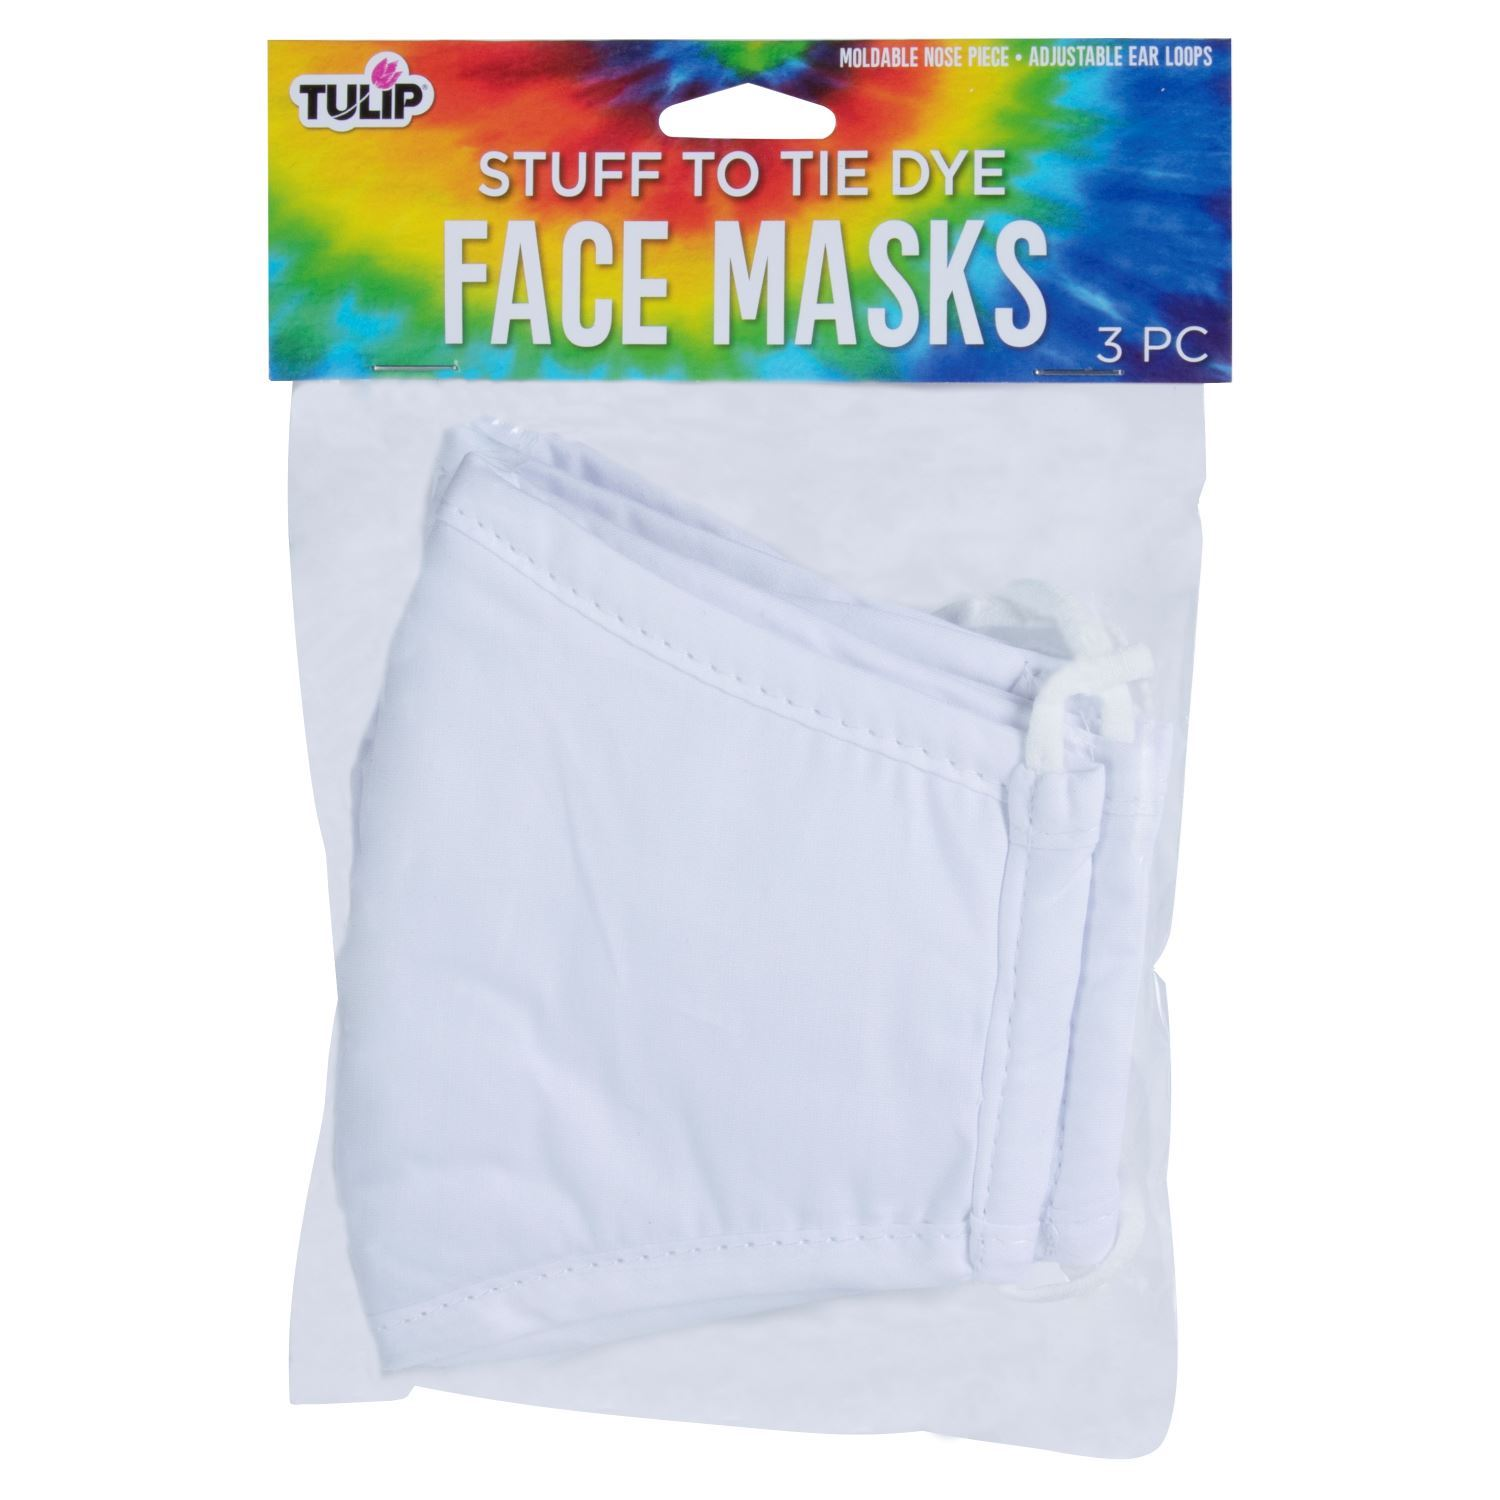 46612 Adult Face Masks 3 Pack front of package